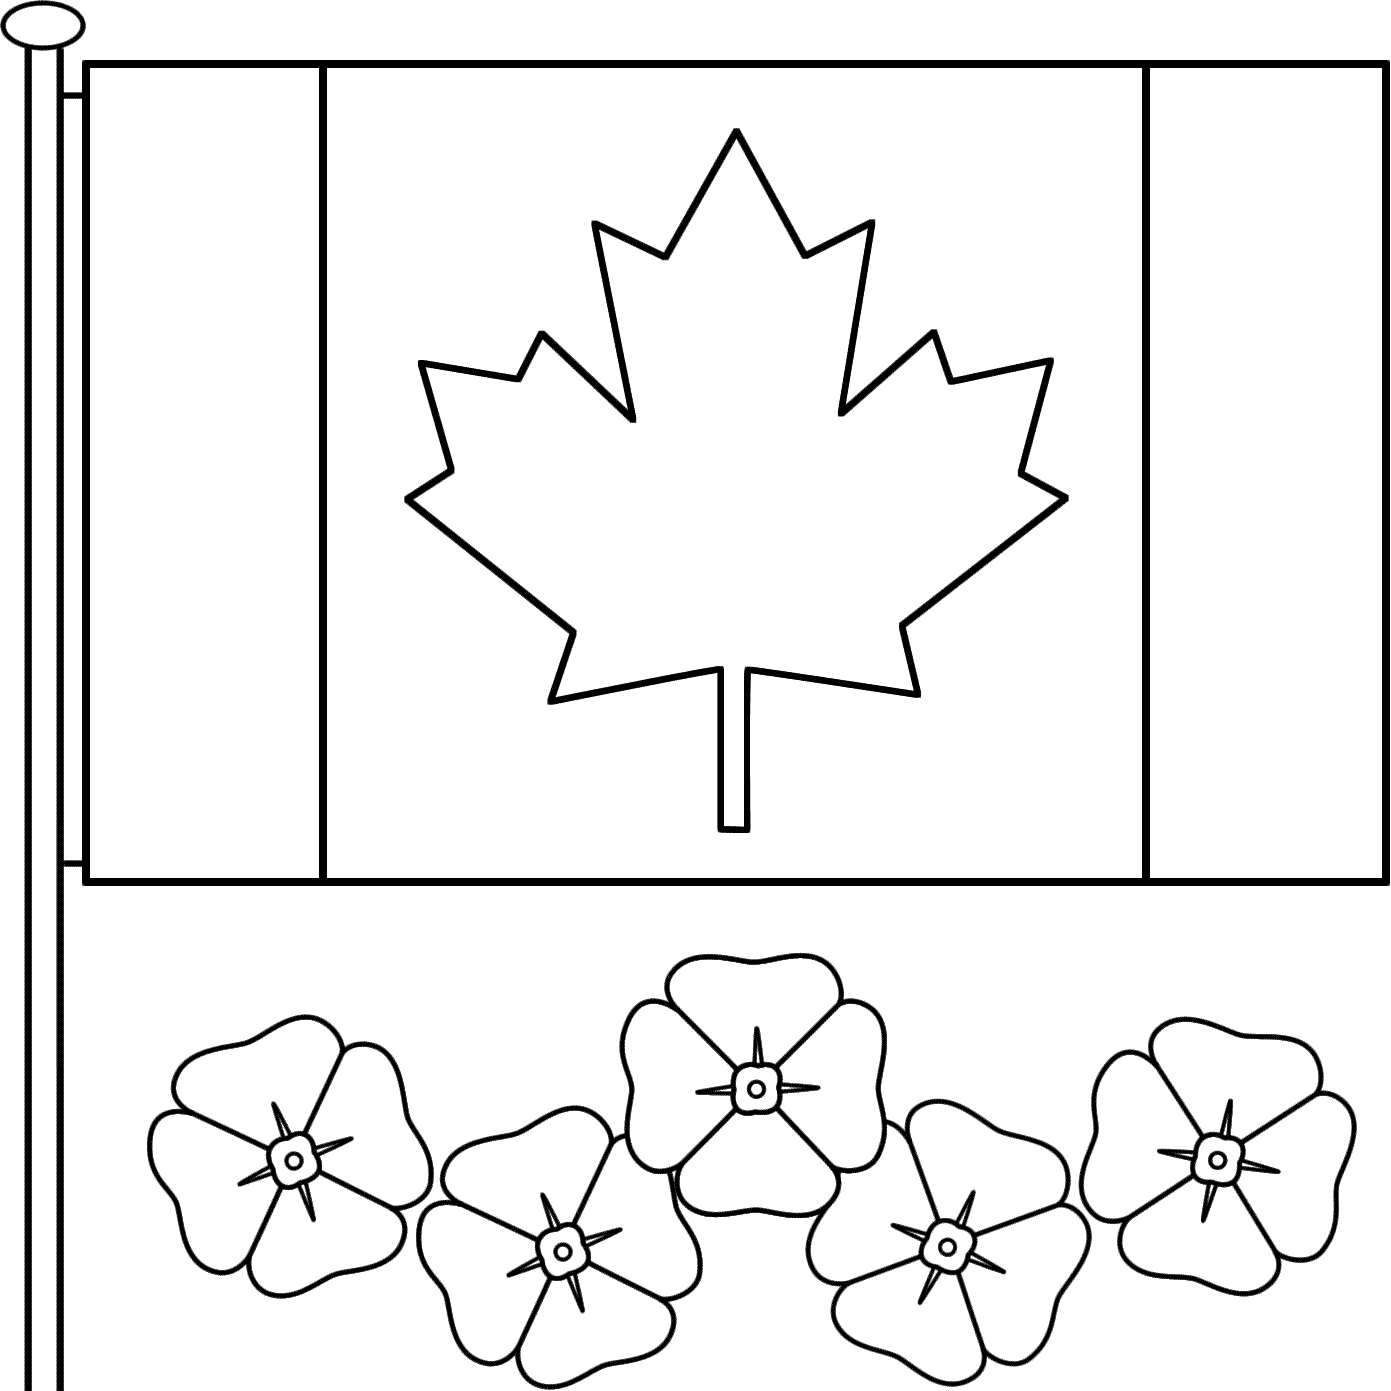 Canadian Flag With Poppies Coloring Page Remembrance Day Remembrance Day Art Poppy Coloring Page Remembrance Day Poppy